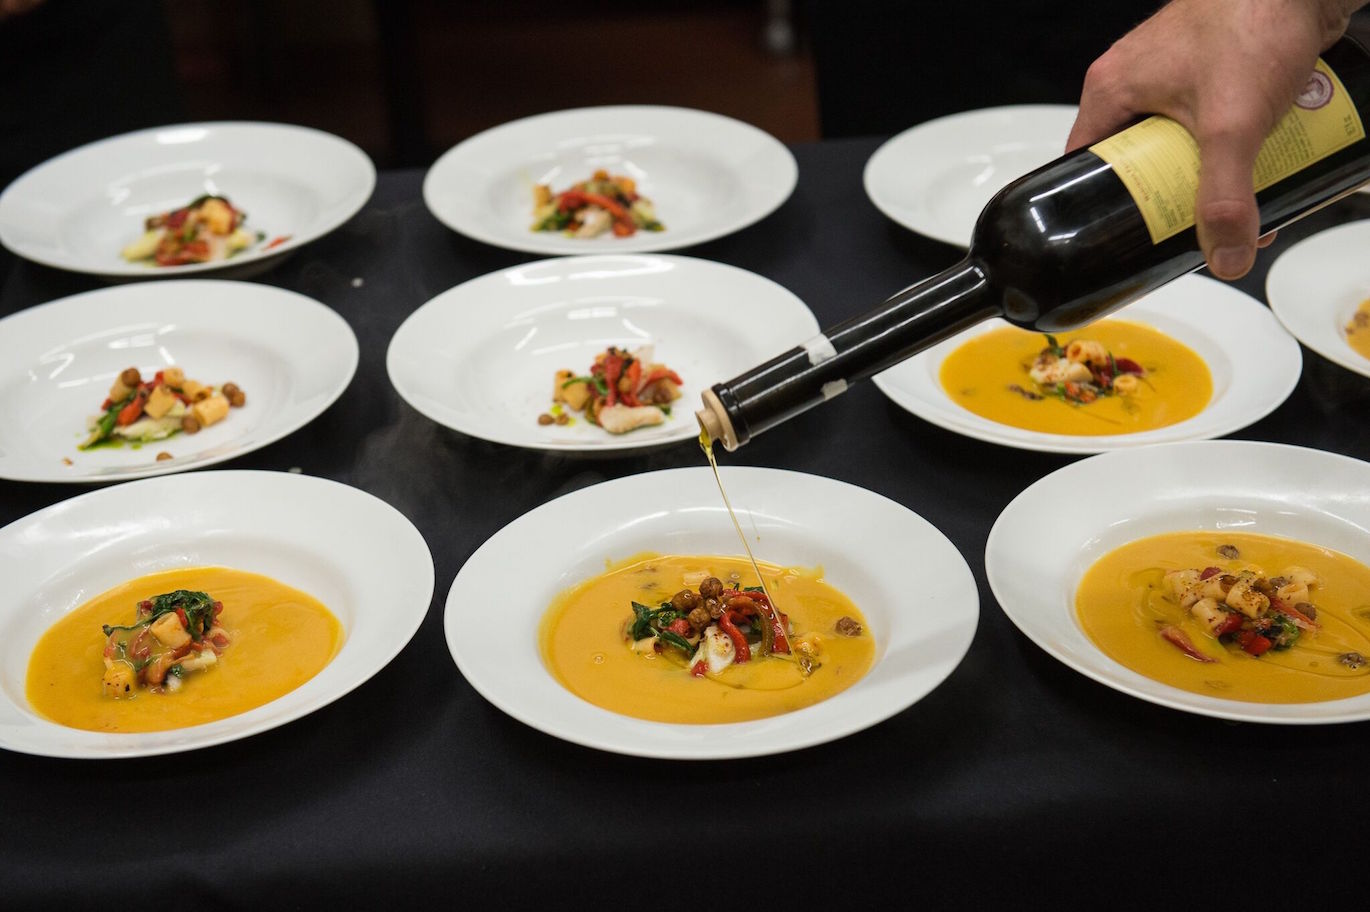 Plates being prepared at the 2015 Taste America event